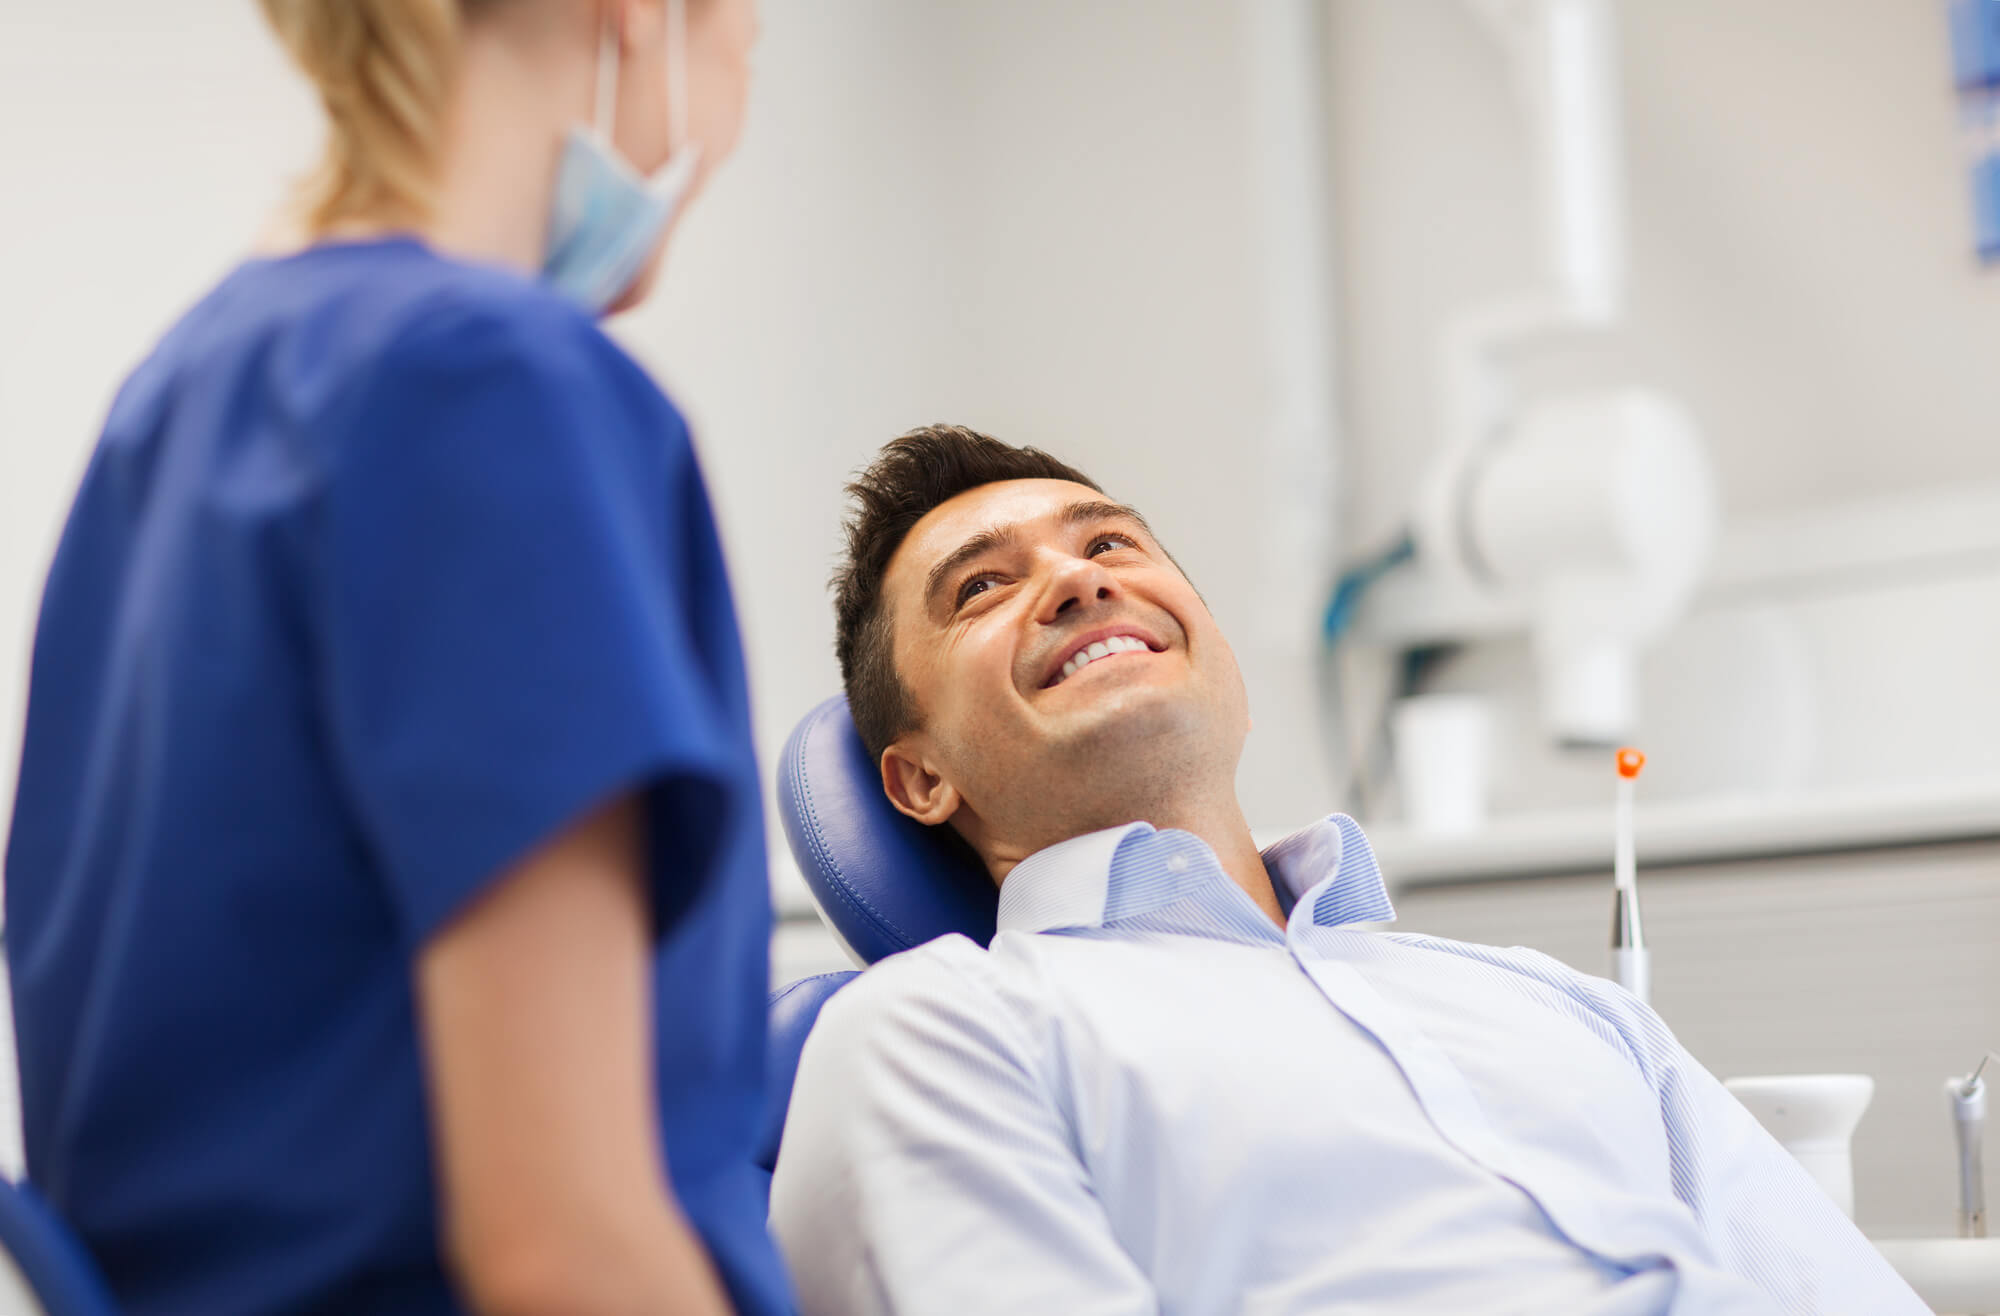 who offers orthognathic surgery coral springs?